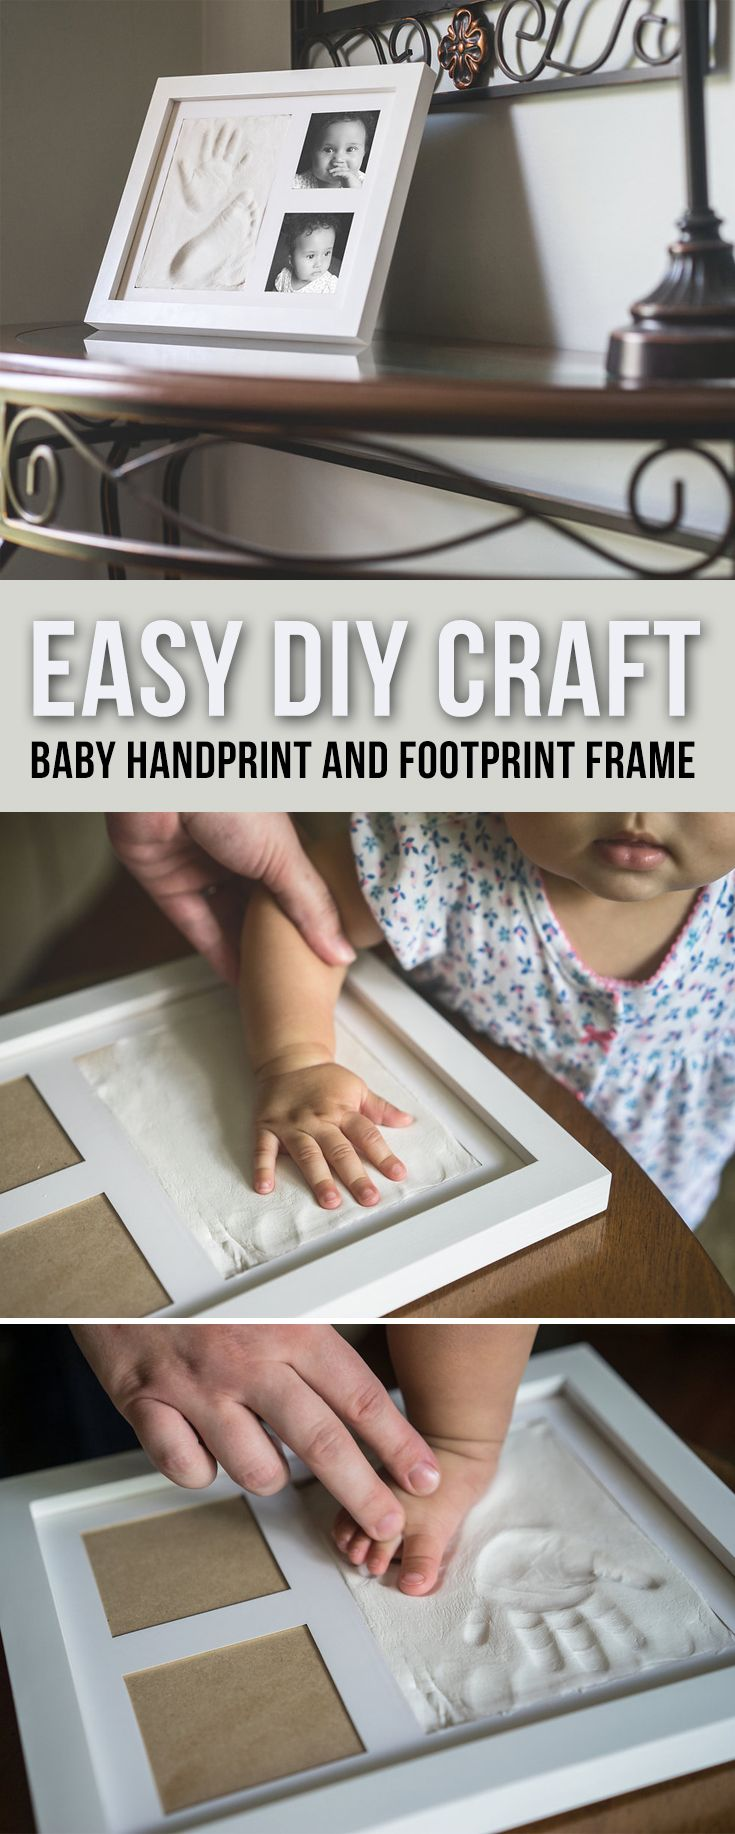 Our baby footprint kits and handprint kits are a fun DIY project. Create treasured memories with this easy DIY craft project - This personalised baby keepsake kit includes:   •THREE packages of soft, pliable, air-drying clay•Safe non-toxic clay is easy-to-use for baby prints. Great gift idea for grandma!